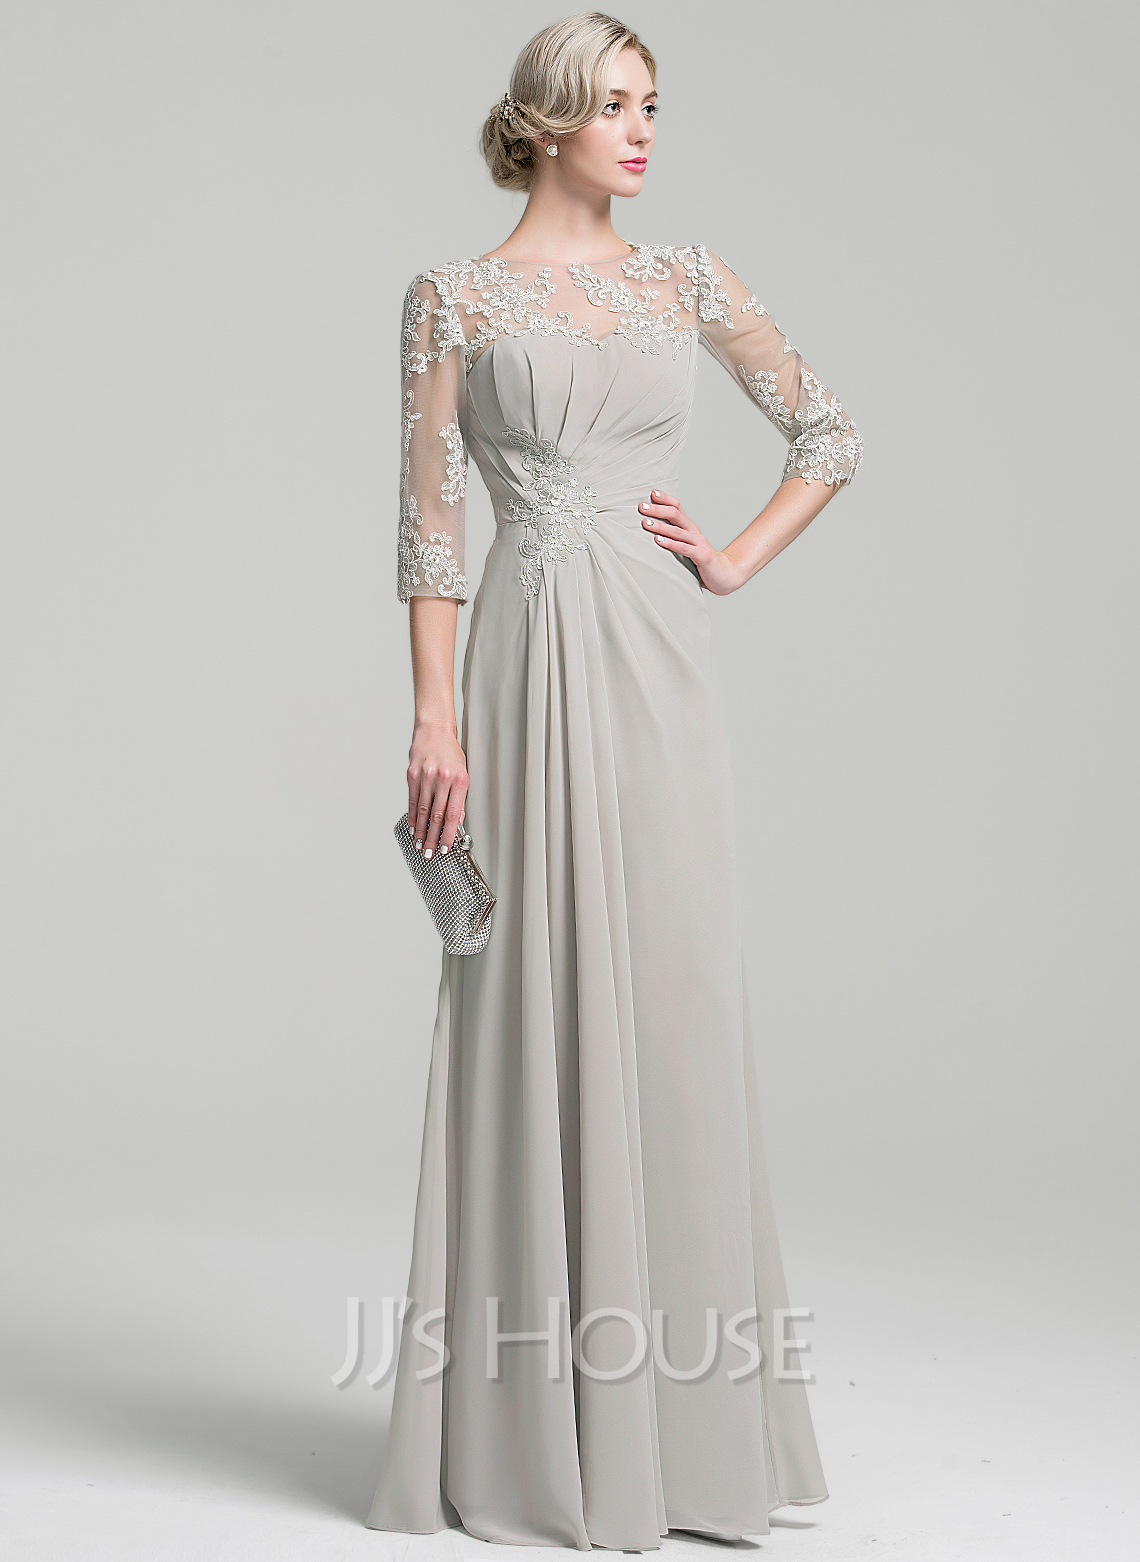 A Line Princess Scoop Neck Floor Length Chiffon Mother Of The Bride Dress With Ruffle g jjshouse wedding dress Loading zoom